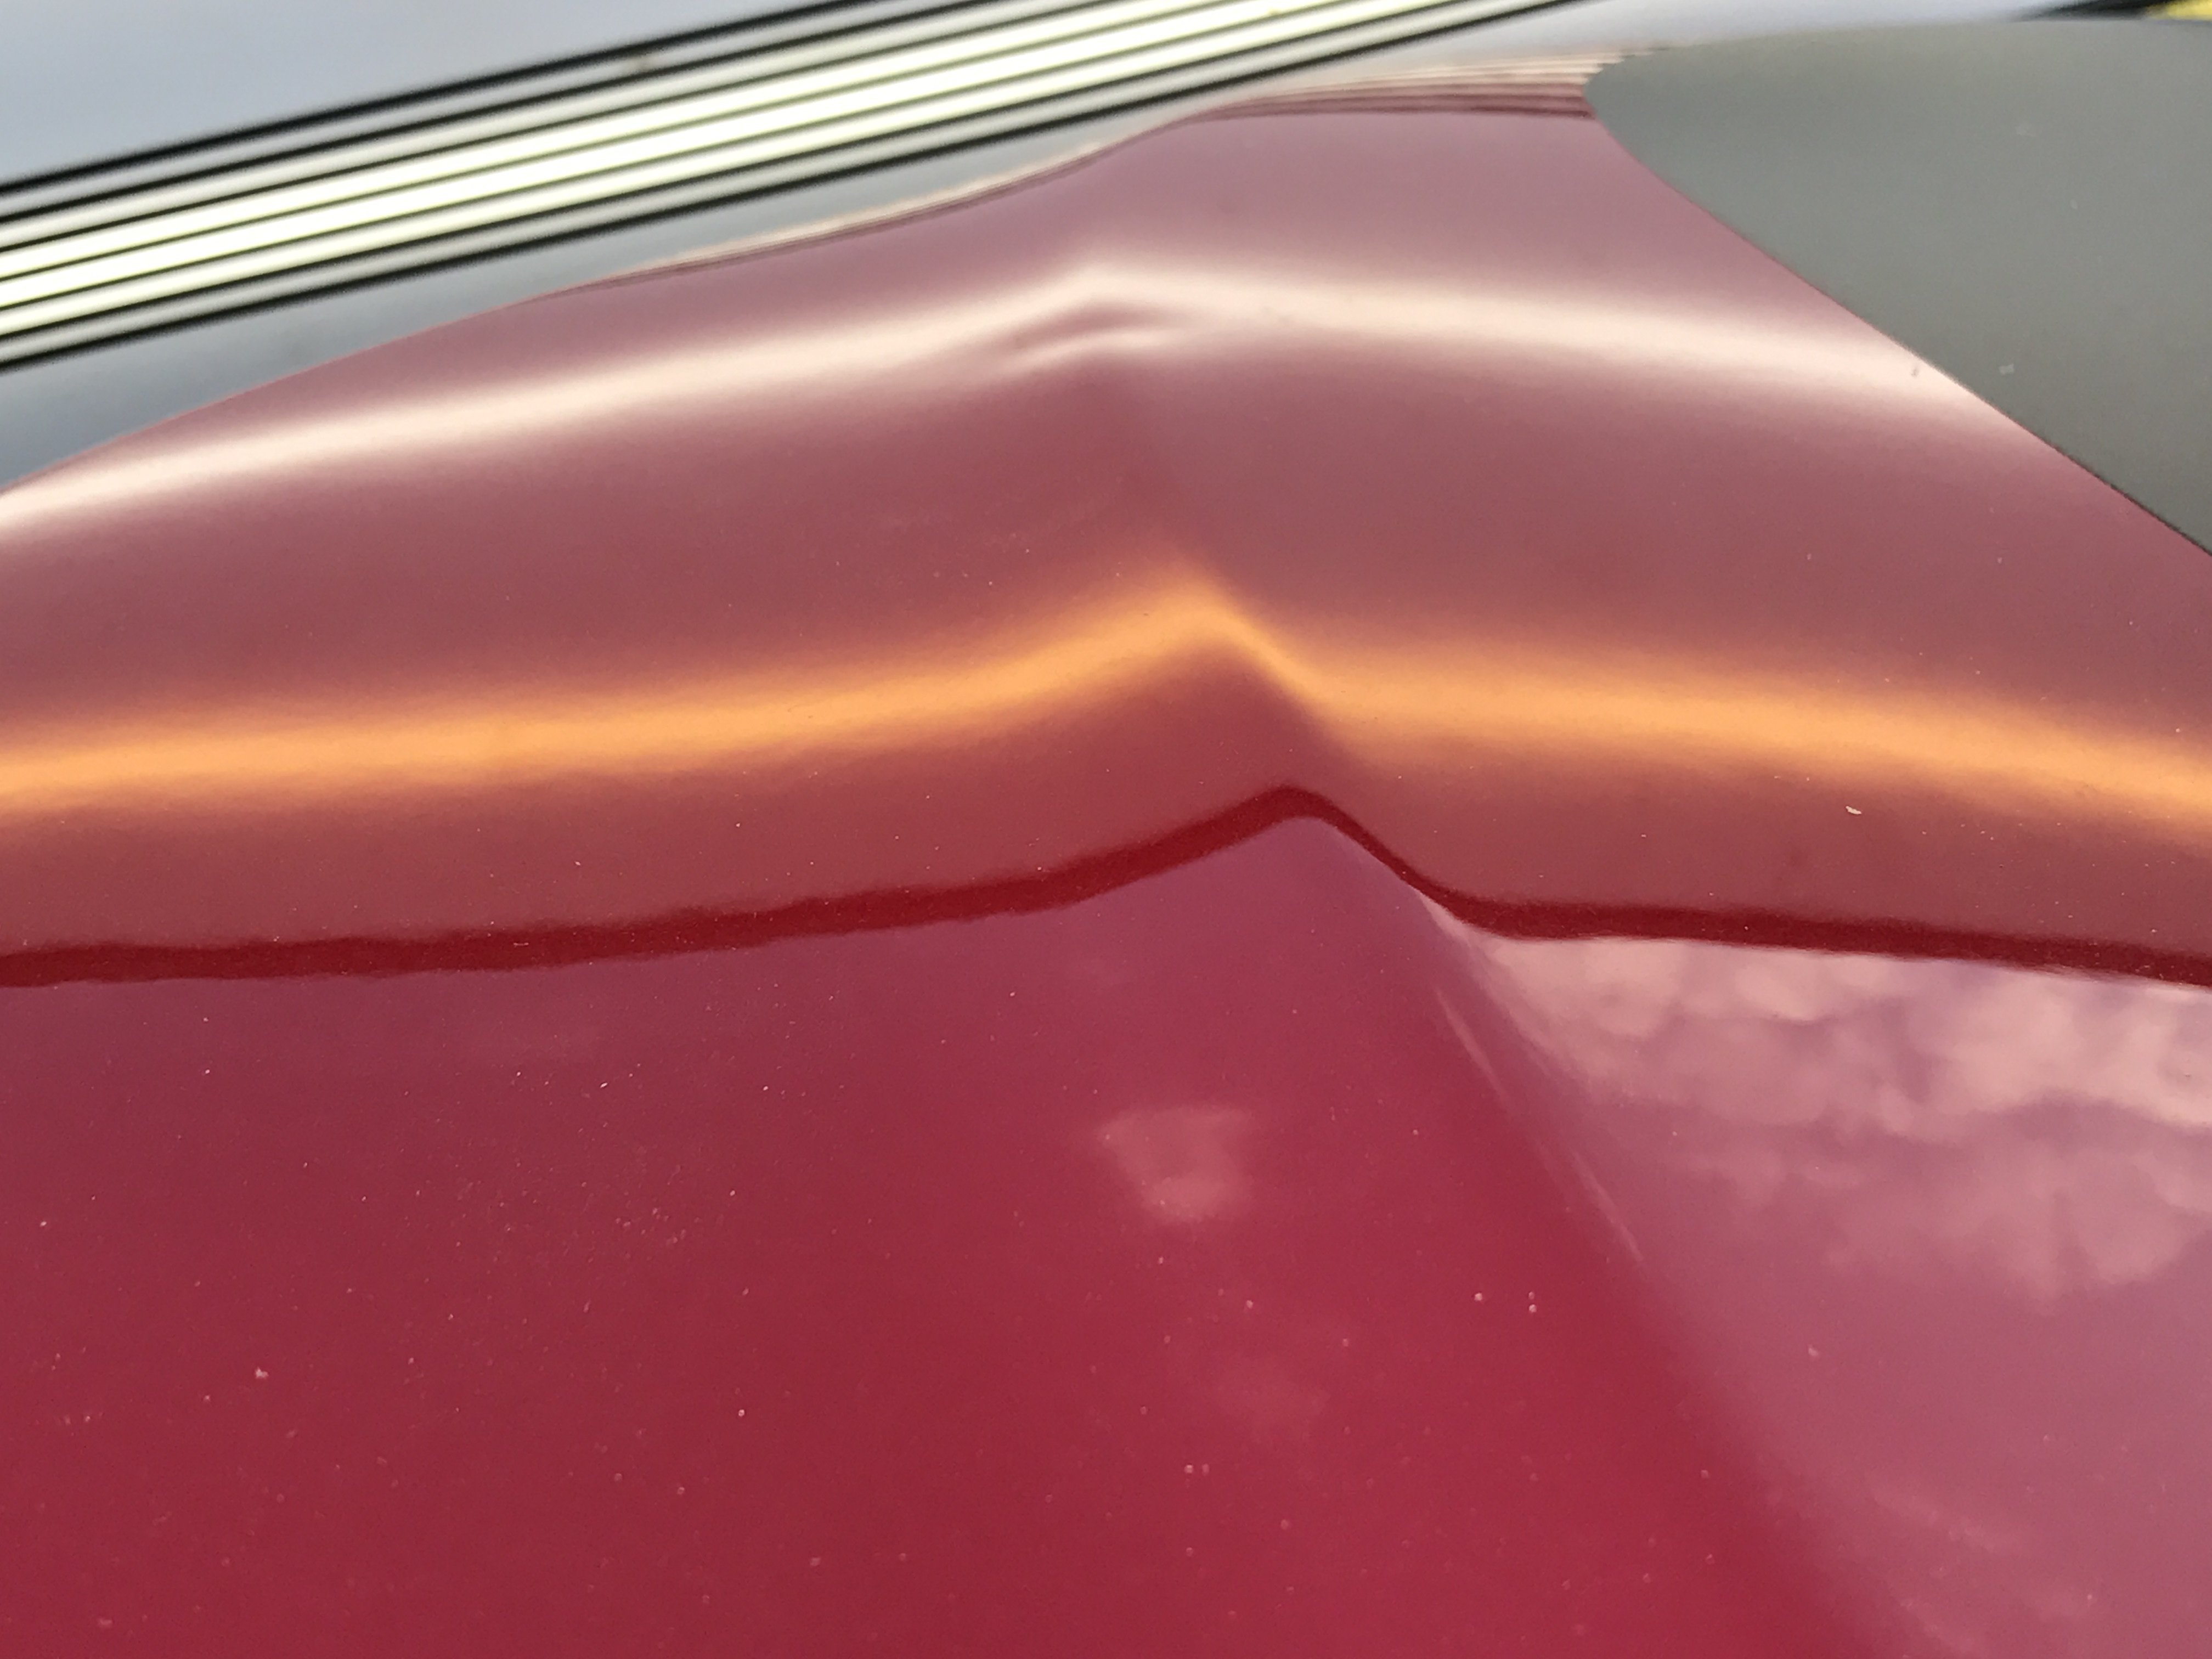 2017 Jeep Grand Cherokee Trailhawk New Vehicel dent removal, this is the before image. Michael was called in to remove this dent at a dealership, to maintain value and to maintain the vehicle's original paint.. http://217dent.com Serving Springfield, Decatur, Taylorville, and surrounding areas. (Before Image)